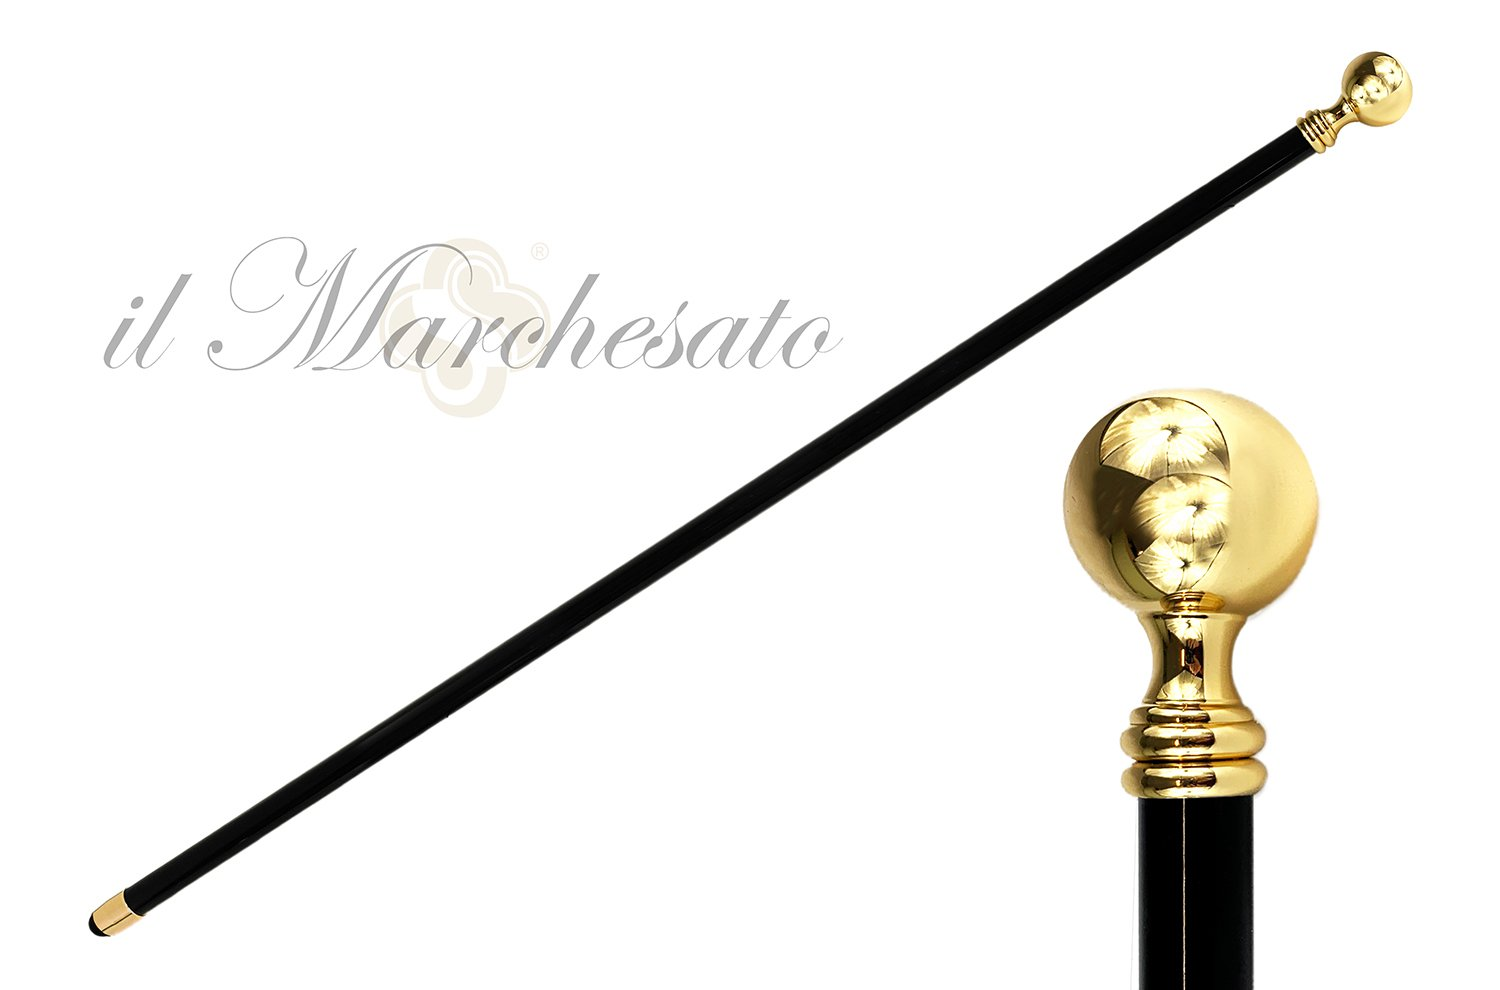 Gold Plated Round Ball Knob Style Cast Brass - IL MARCHESATO LUXURY UMBRELLAS, CANES AND SHOEHORNS